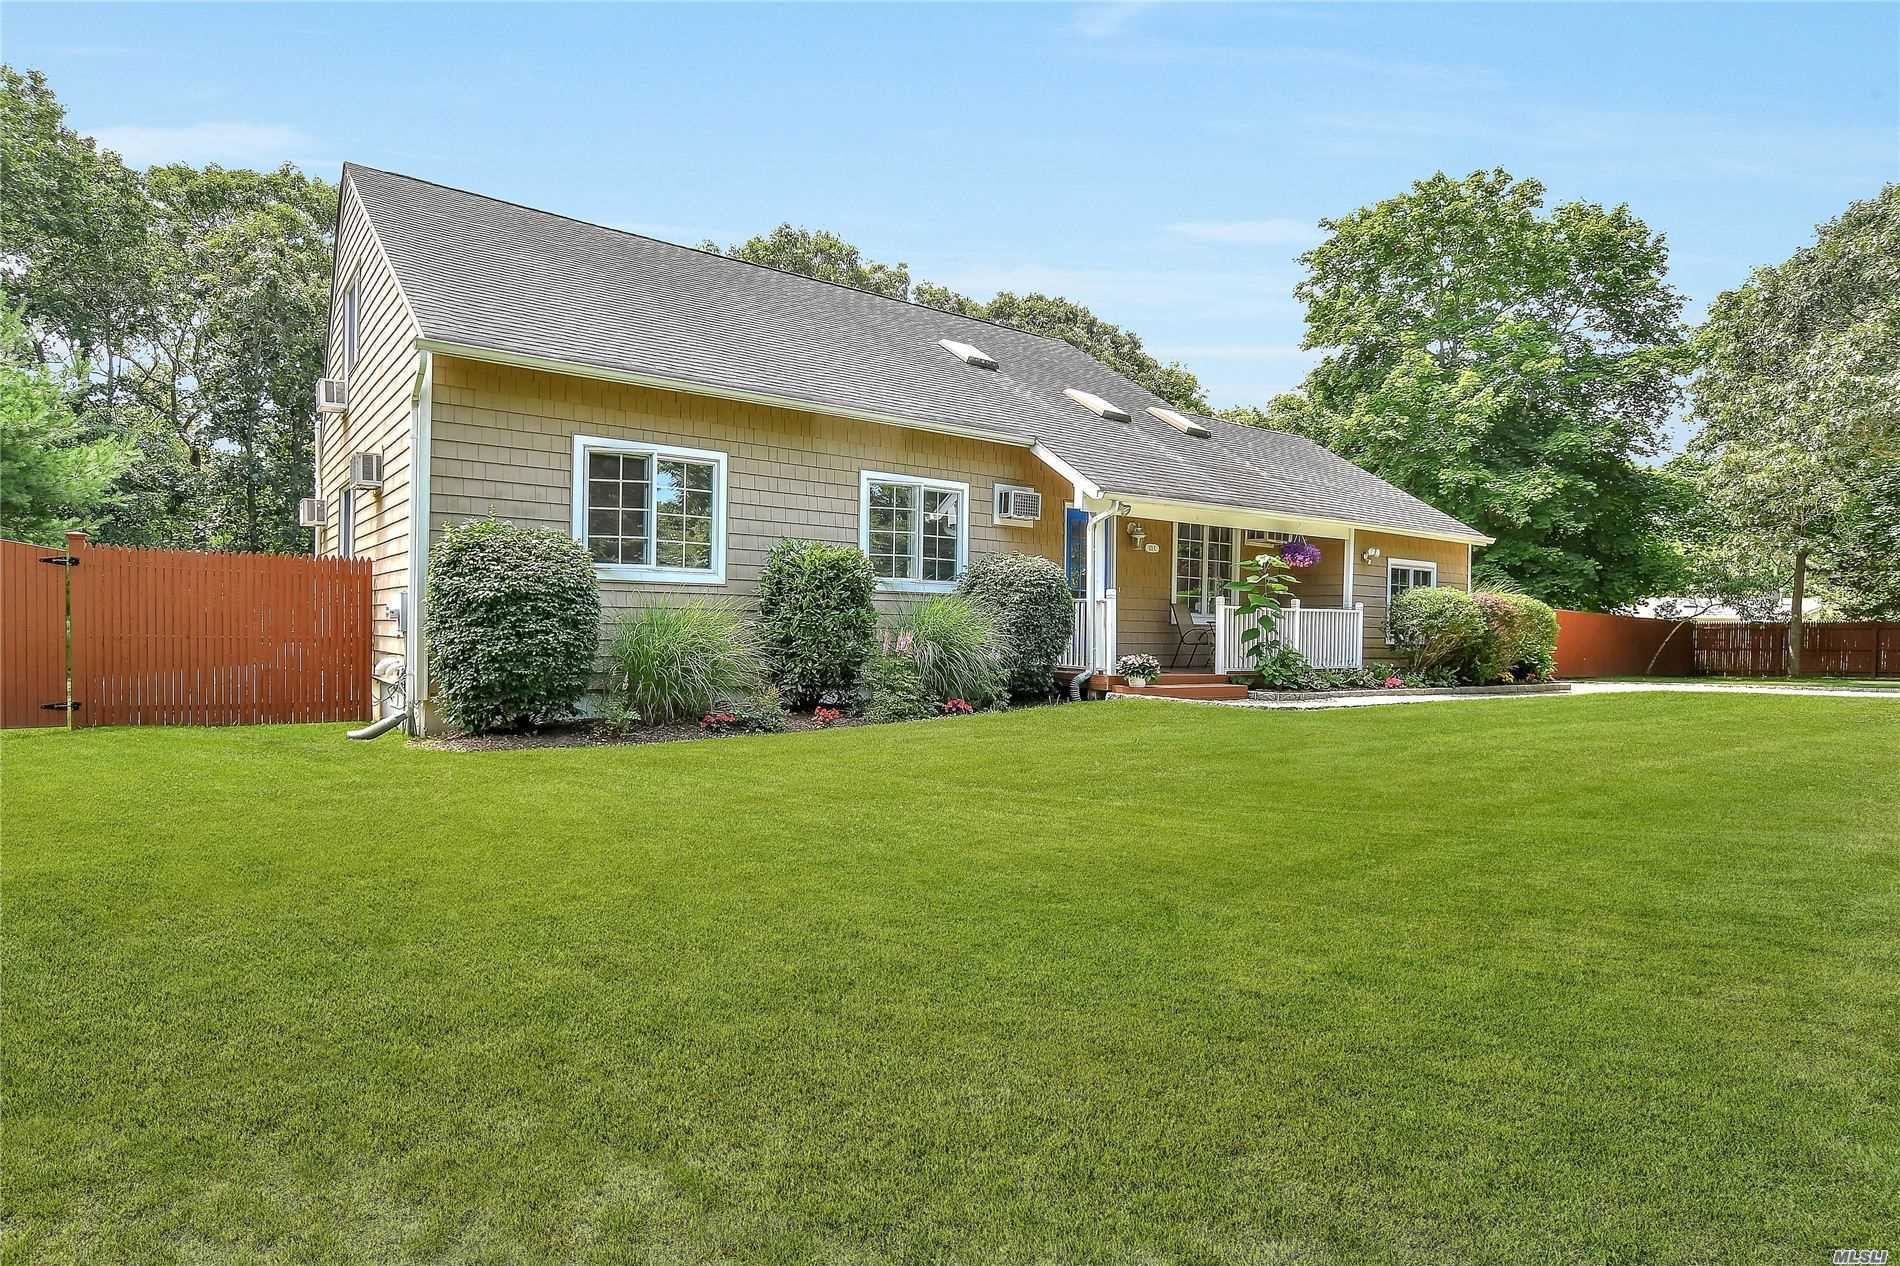 Beautiful two story home set on park like grounds.Its Hamptons living at its best! As you enter flow into the open plan family room, kitchen and views of the spacious pool sized backyard.Also on the first floor are Three Bedrooms, Jacuzzi bath and access to a large finished basement. Upstairs boasts two guest bedrooms, a hall bath, with plenty of storage. Large decking, solar heated pool, outdoor shower Call for a private Showing today Newly listed 695, 000